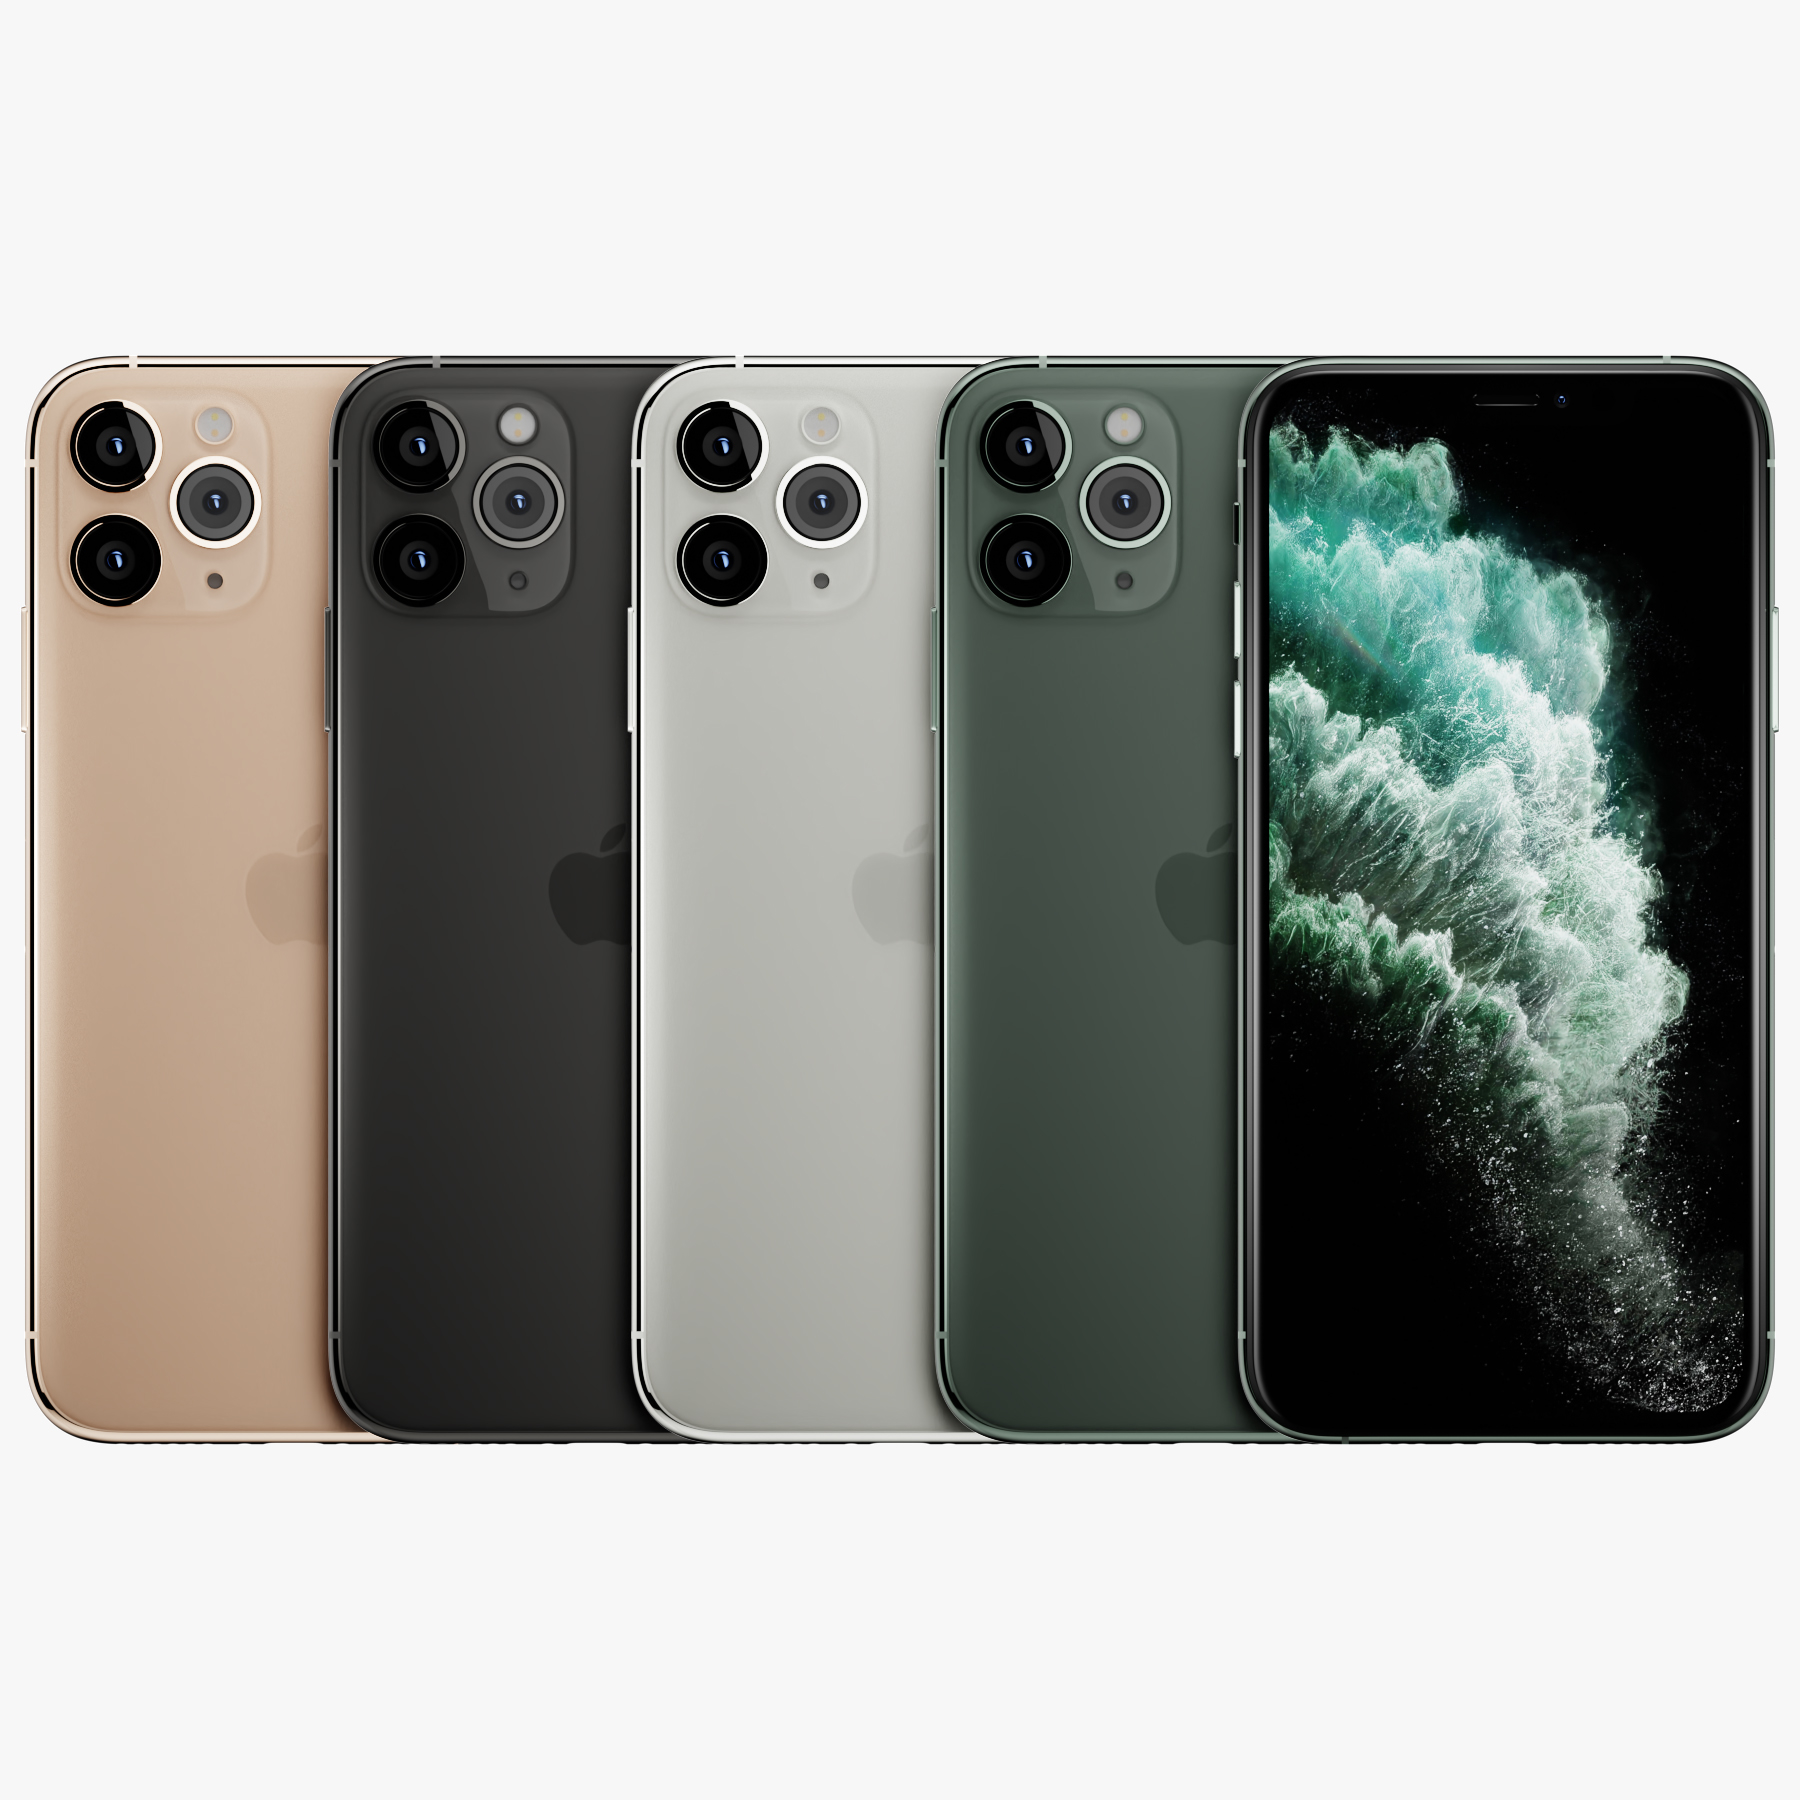 3D iphone 11 pro model